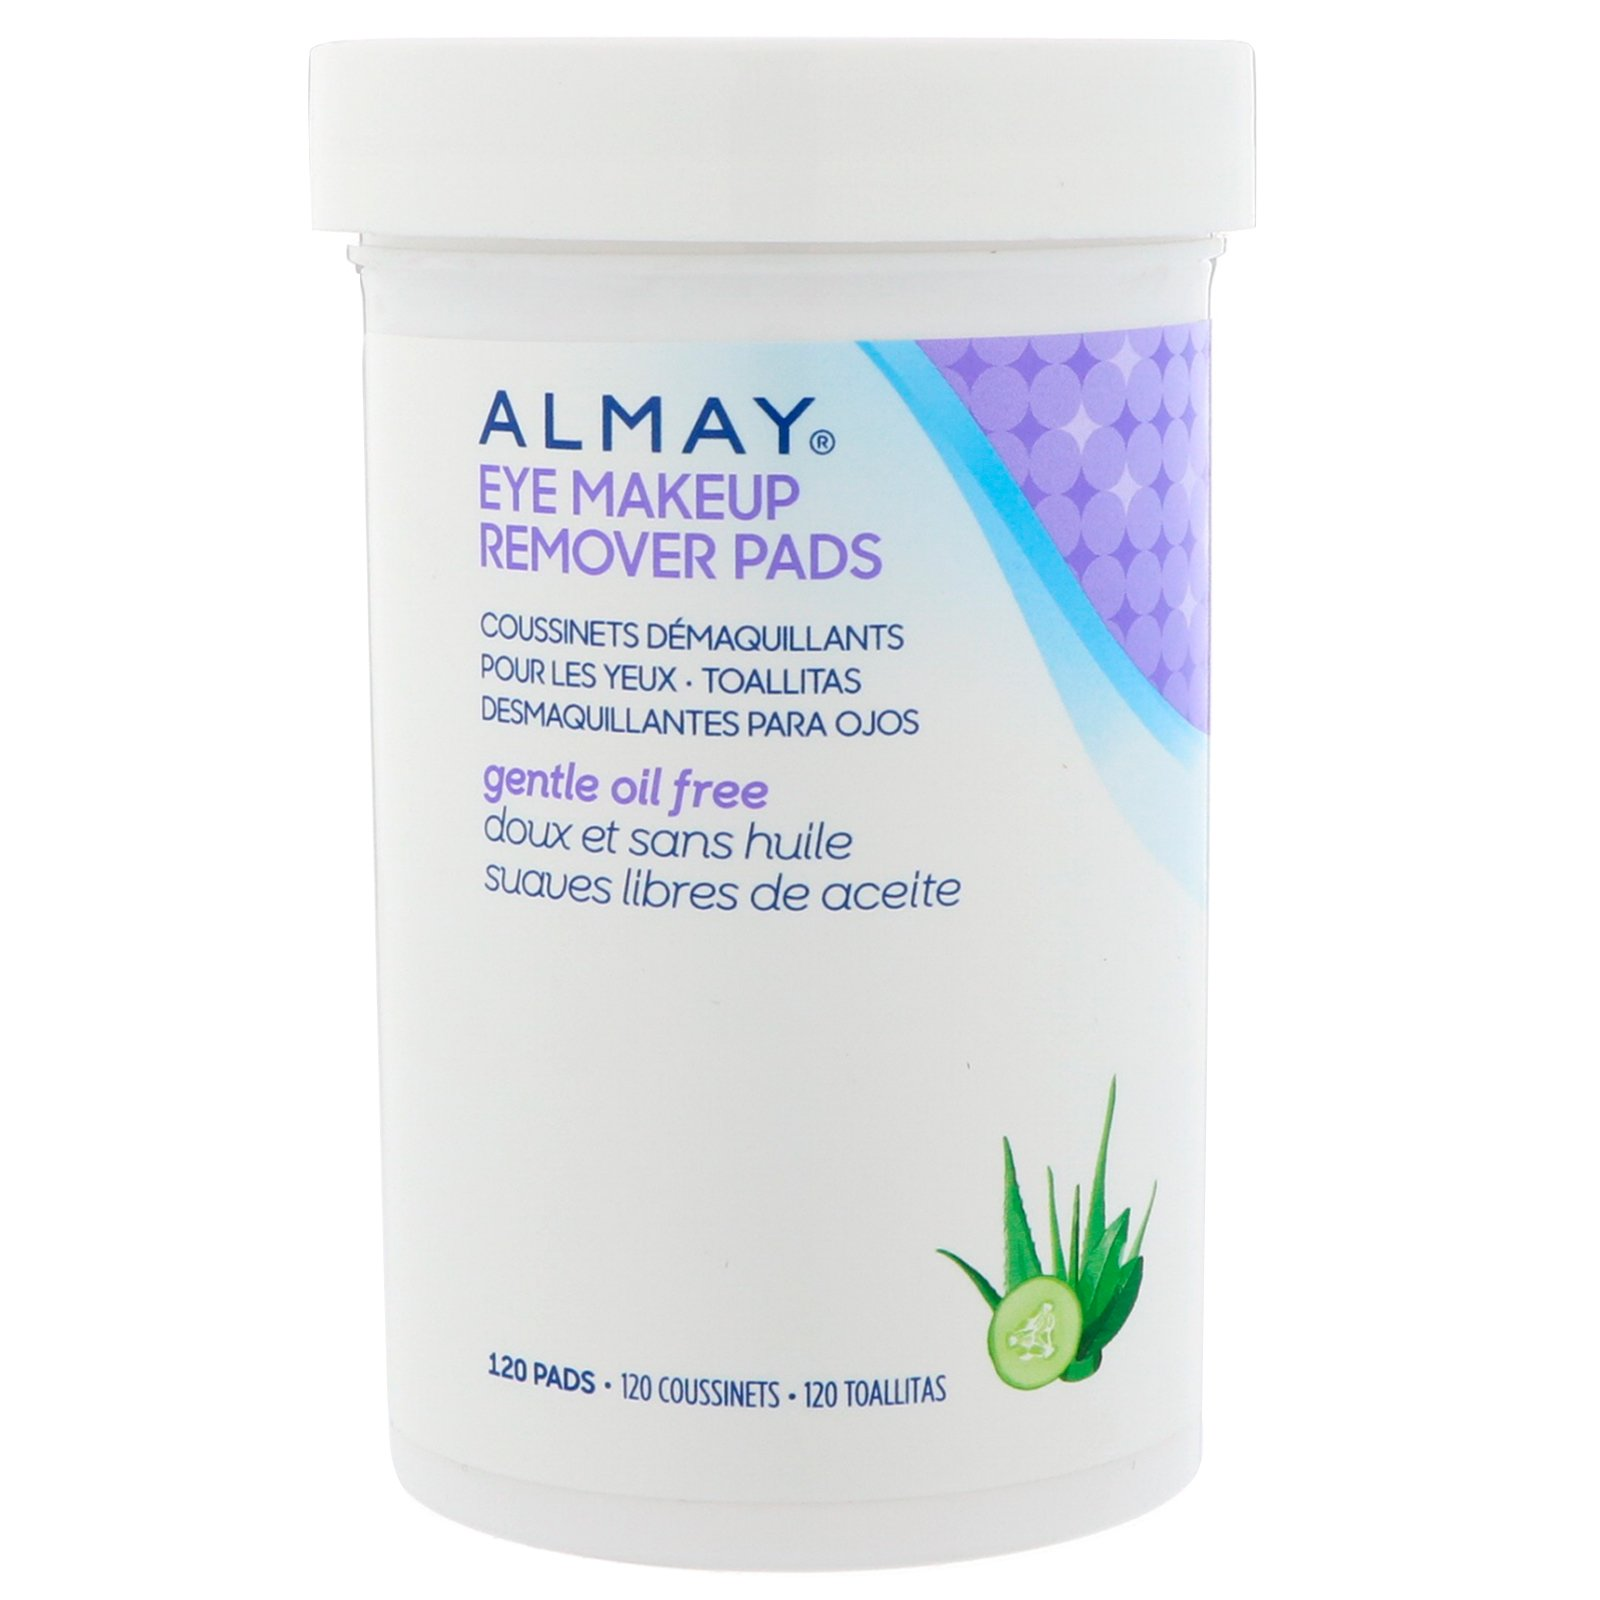 Almay Eye Makeup Remover Pads Gentle Oil Free 120 Pads Iherb